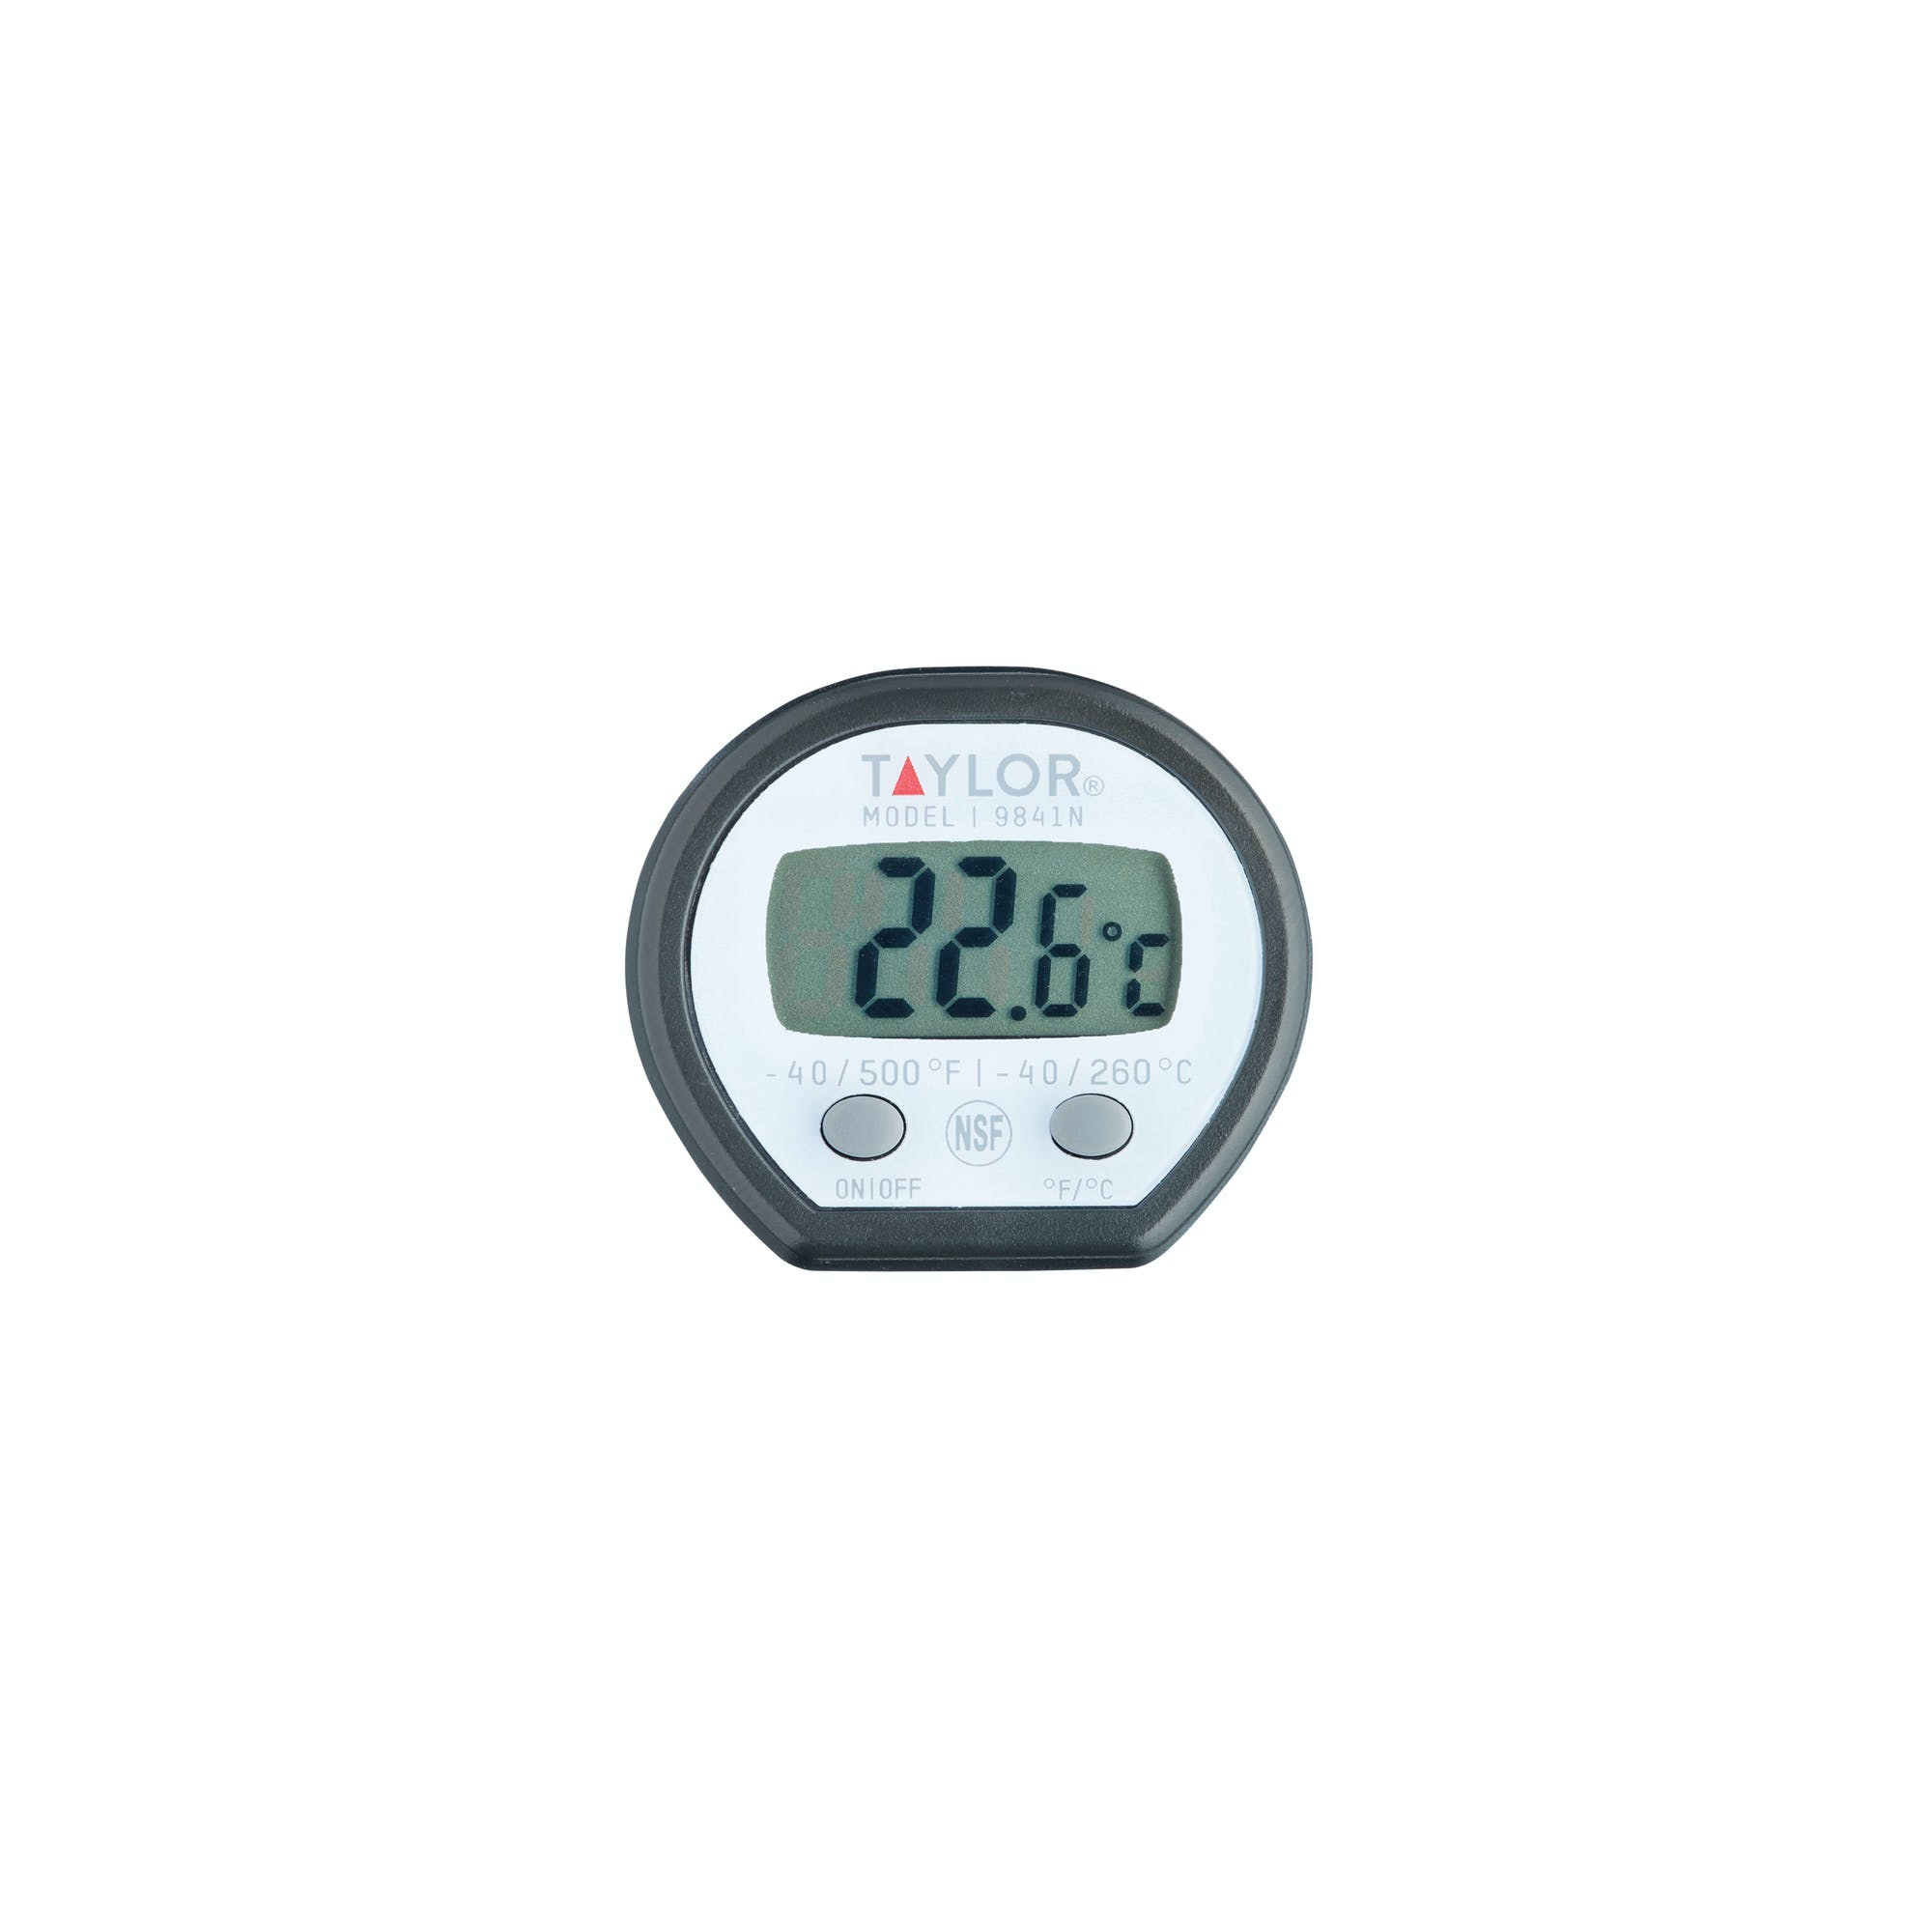 Taylor Pro Digital High Temperature Thermometer